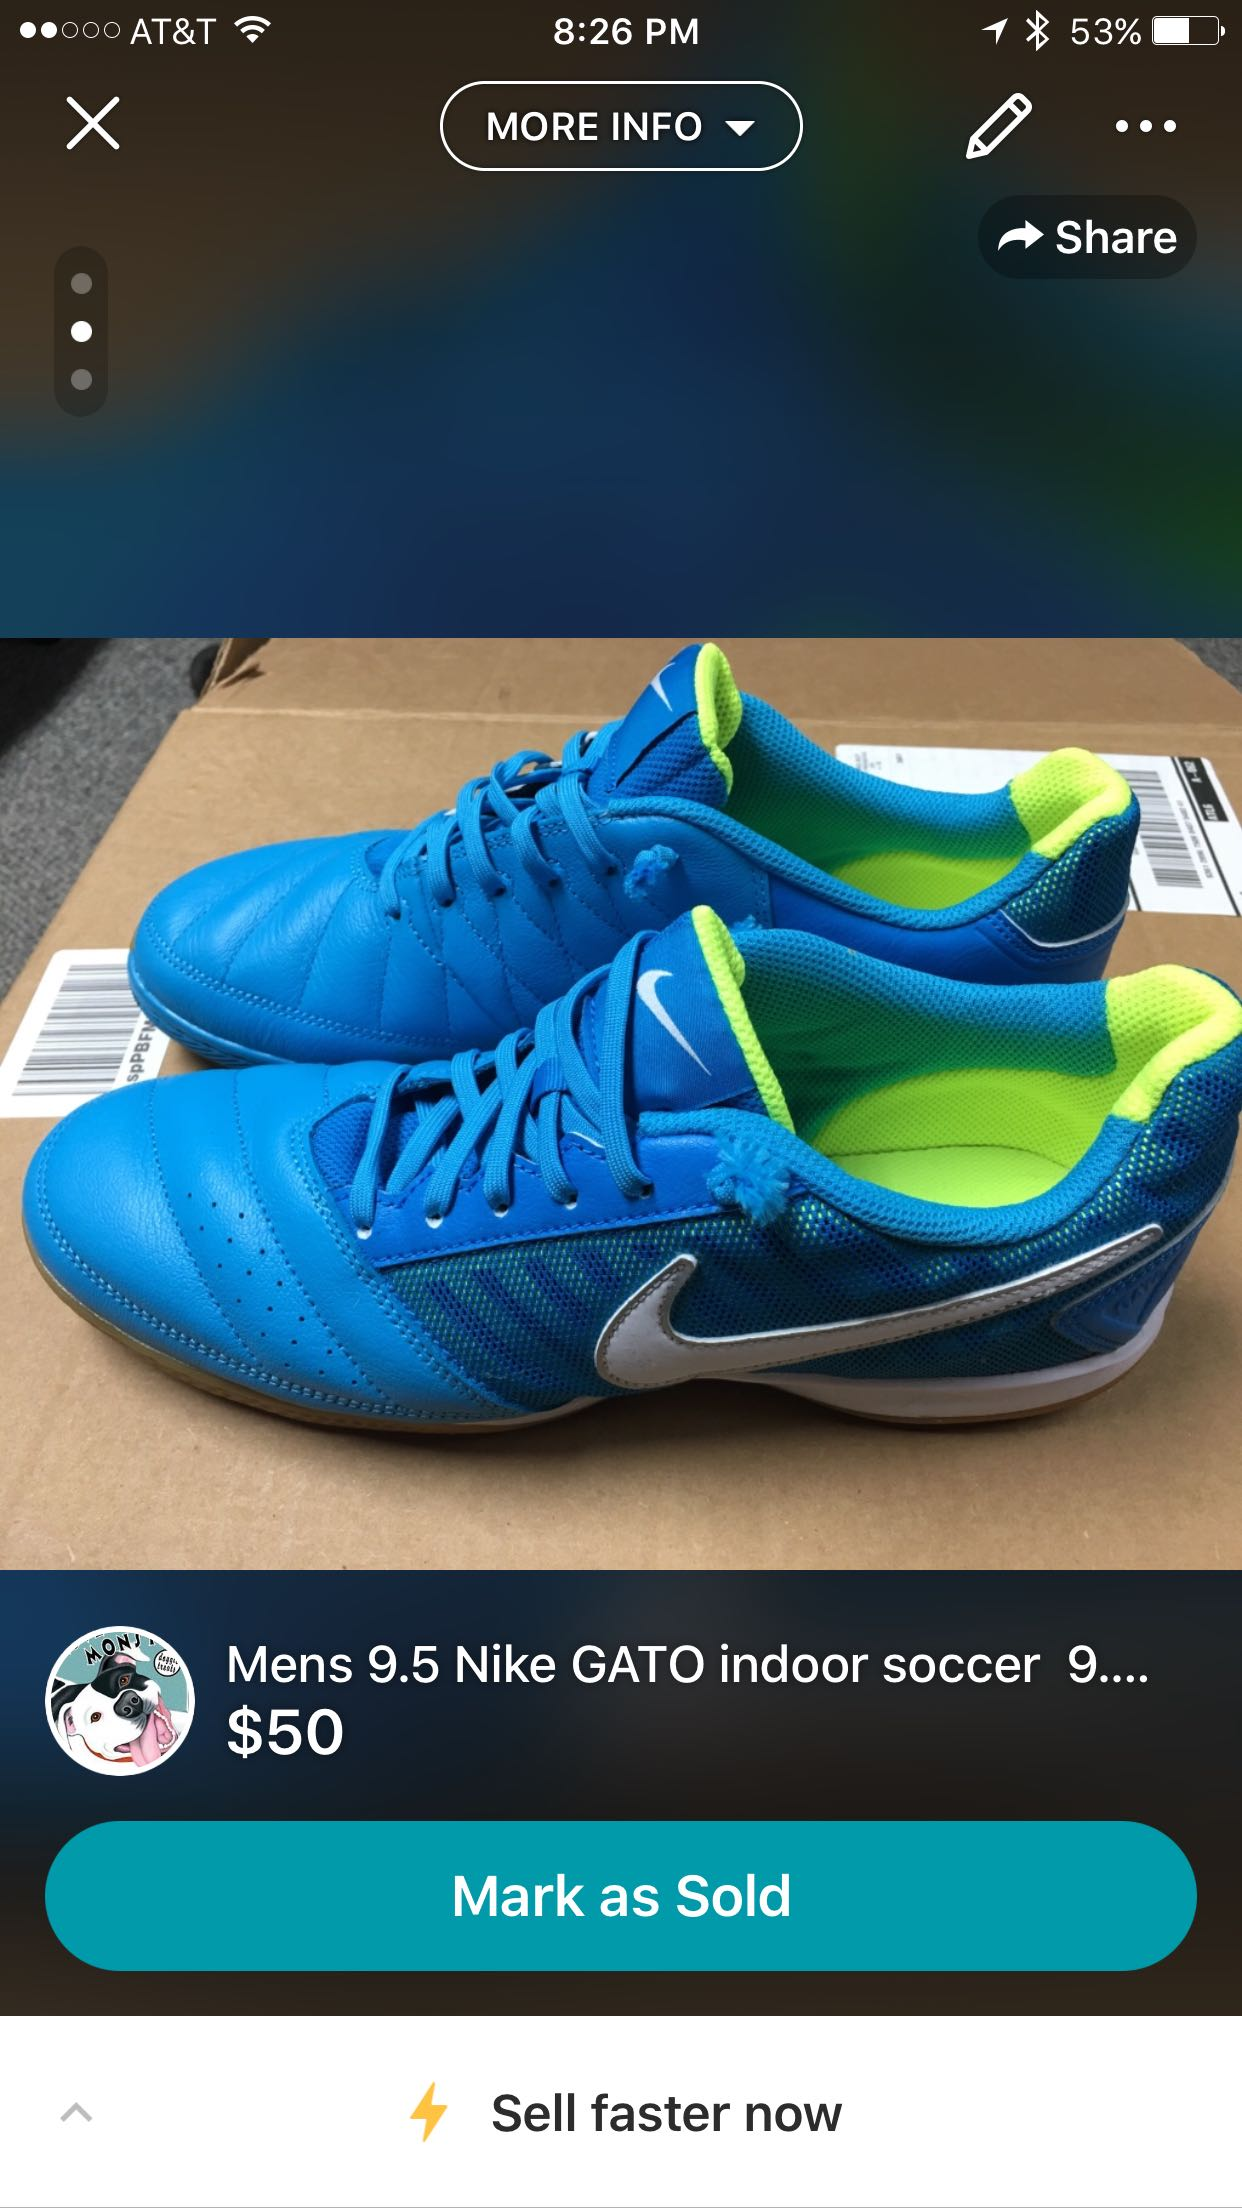 Mens 9.5 Nike GATO indoor soccer 9.5/10